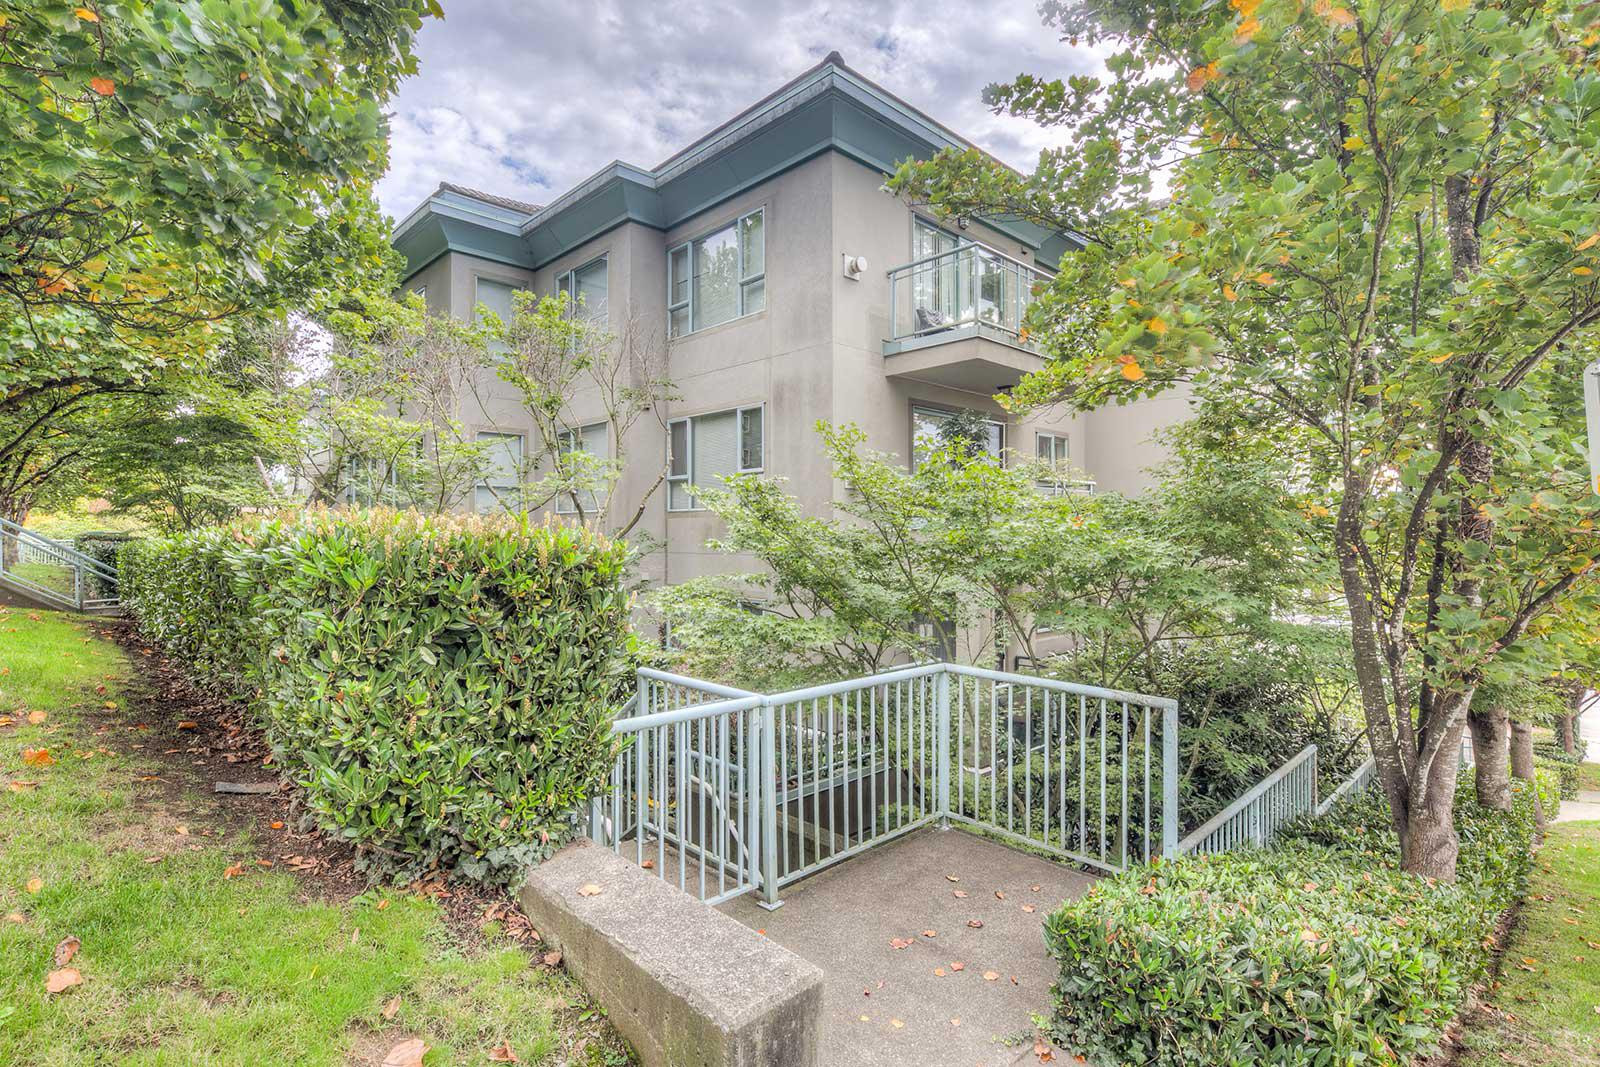 Lloyd Regency at 1085 17th Street West, North Vancouver District 0